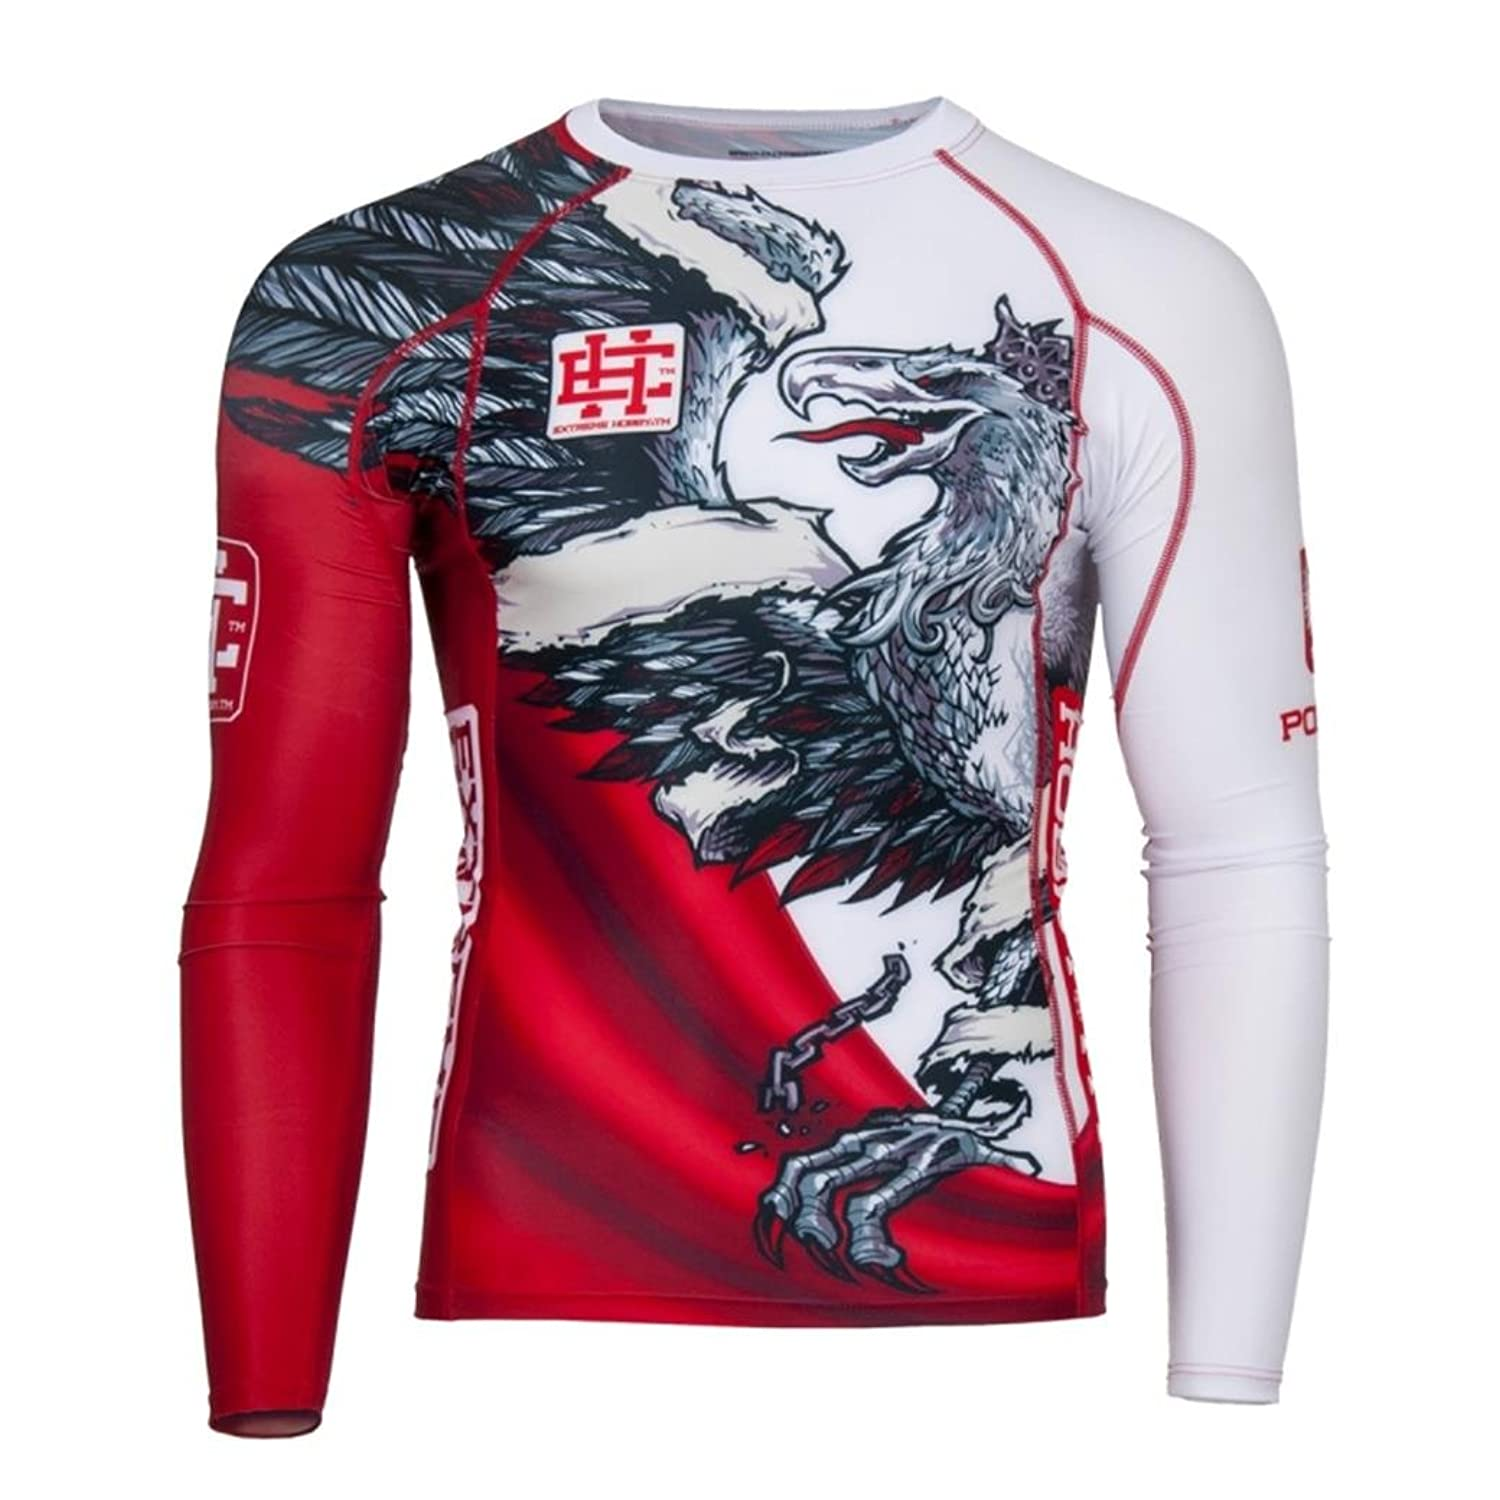 Image of Extreme Hobby White Eagle Poland Long Sleeve Rash Guard Top